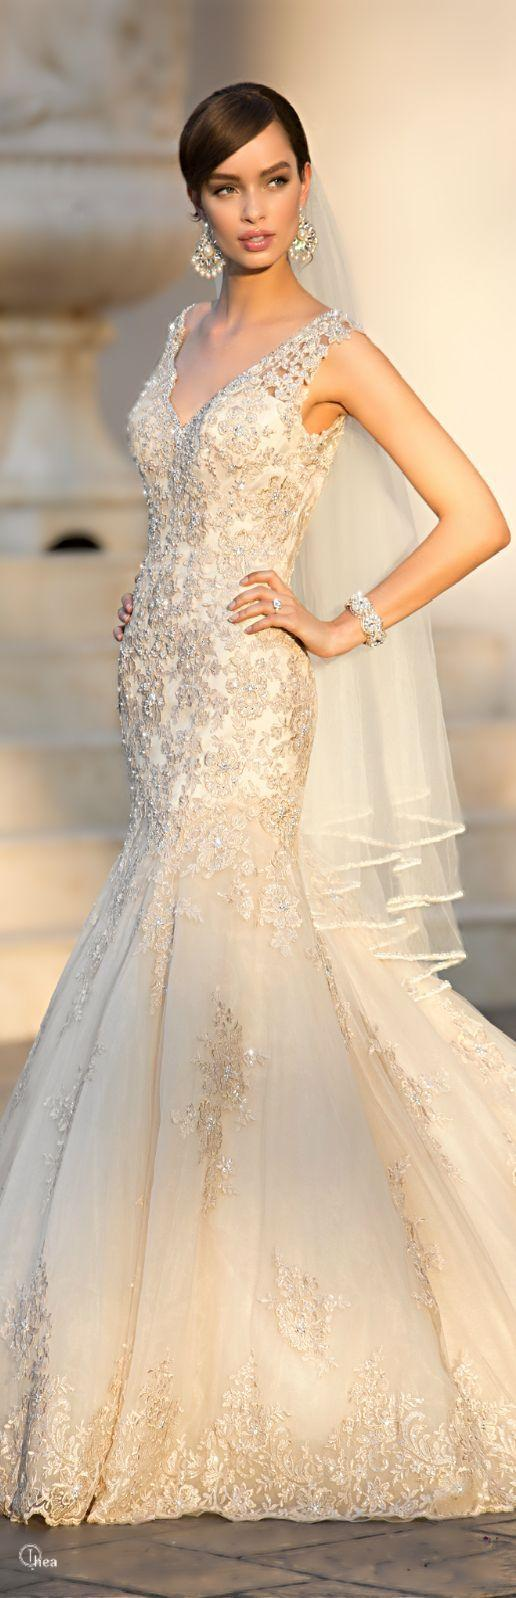 Wedding - Say Yes To This Dress